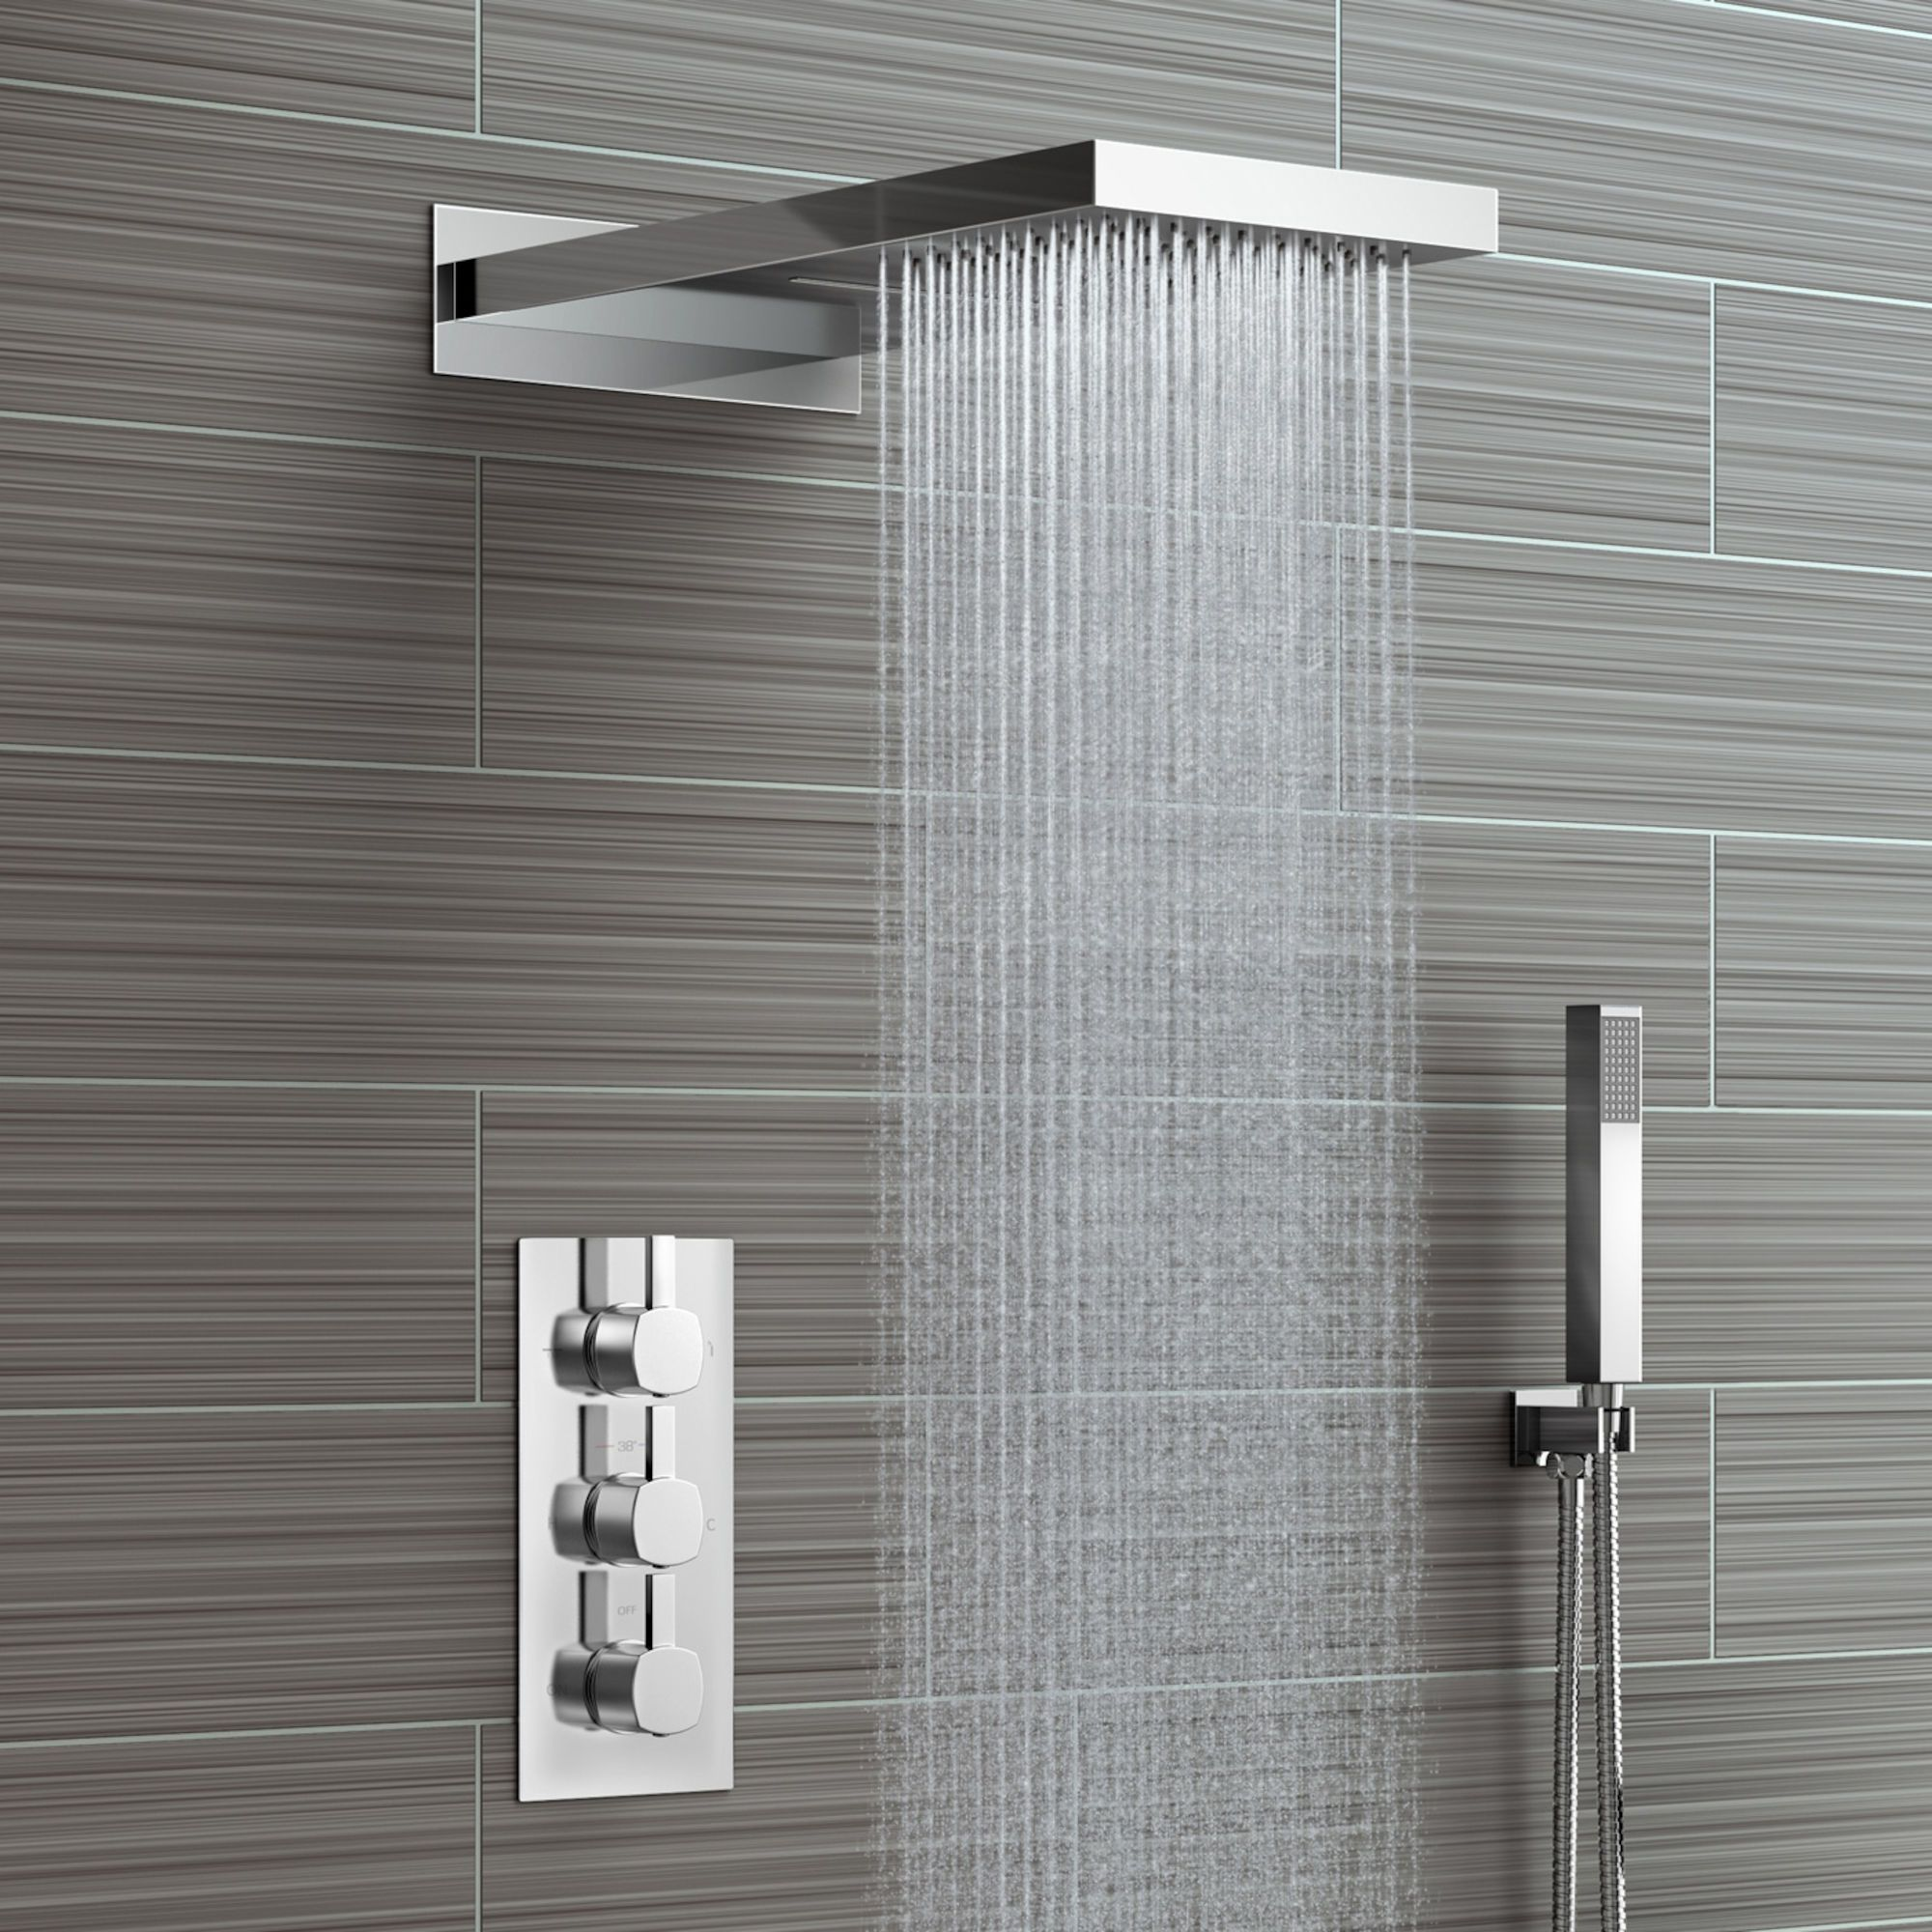 Rectangular Concealed Thermostatic Mixer Shower Kit Rainfall Head